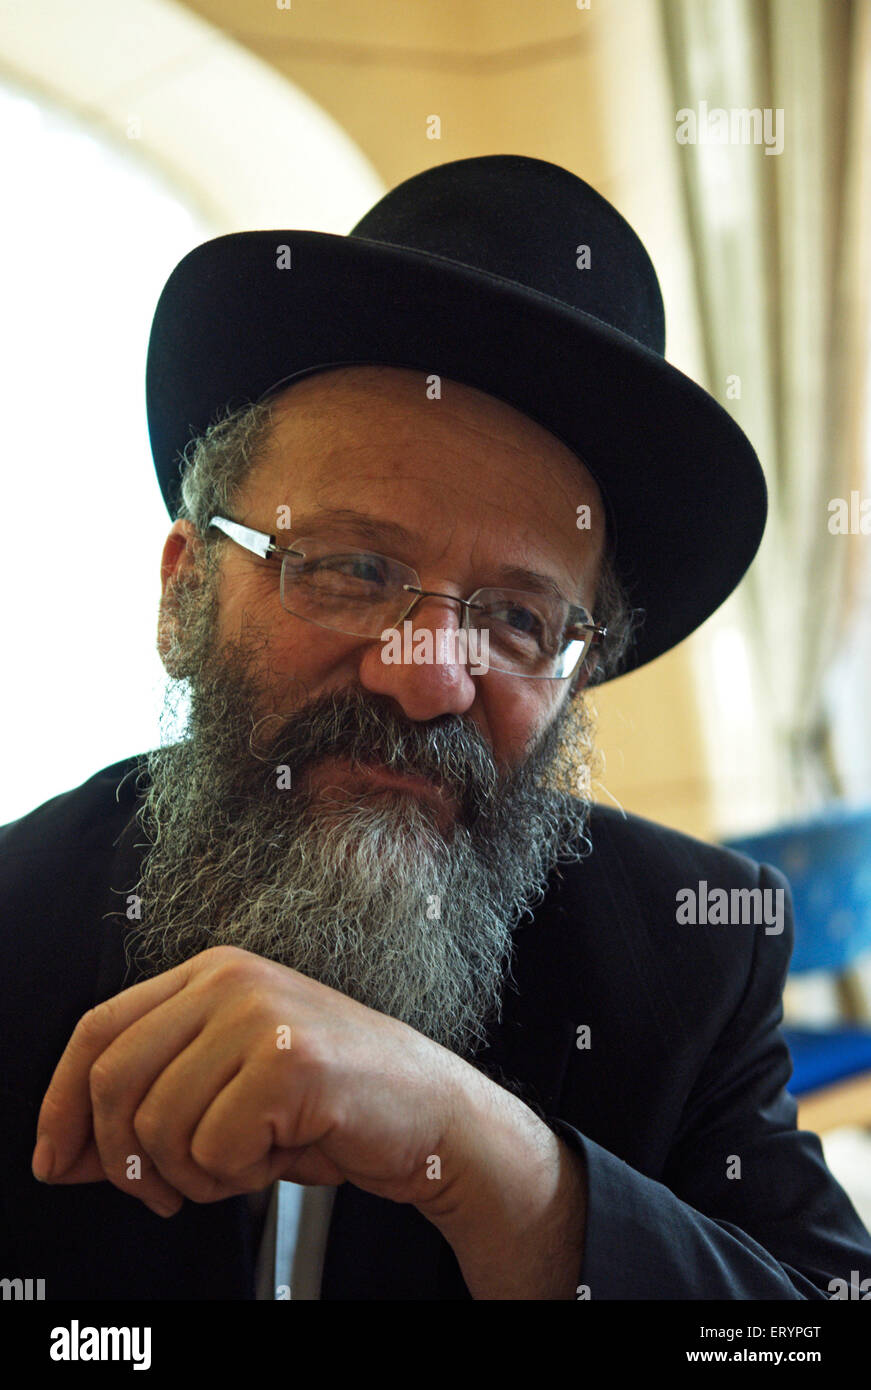 Nachman Holtzberg victim in terrorists attack by deccan mujahedeen in Nariman House at Bombay Mumbai - Stock Image